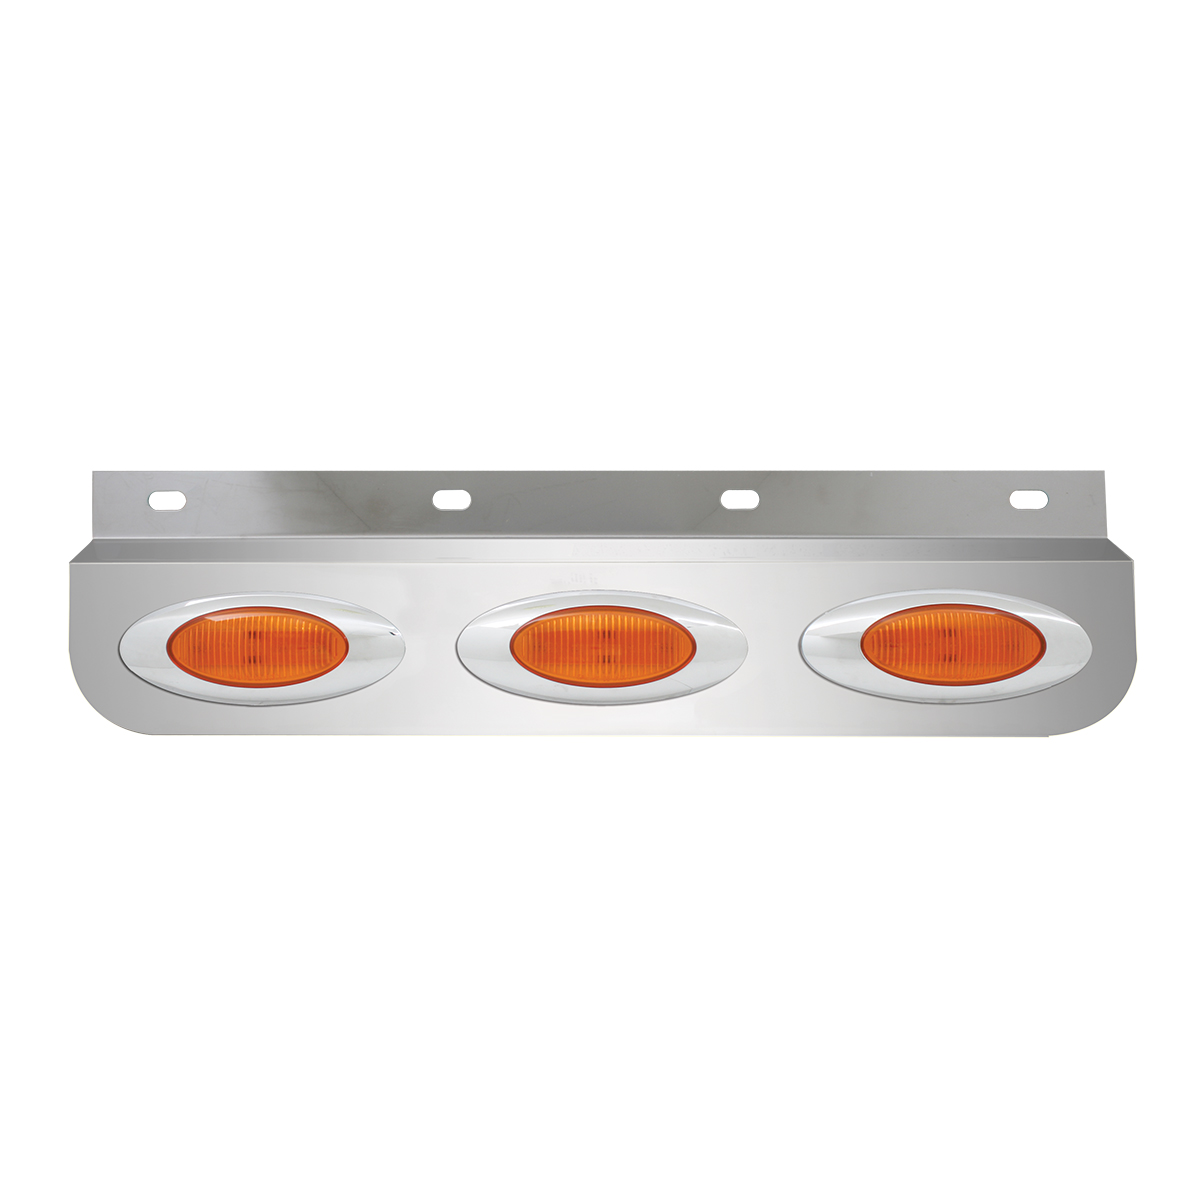 #30660 Stainless Steel Lighted Top Plate with Y2K LED Marker Lights - Amber